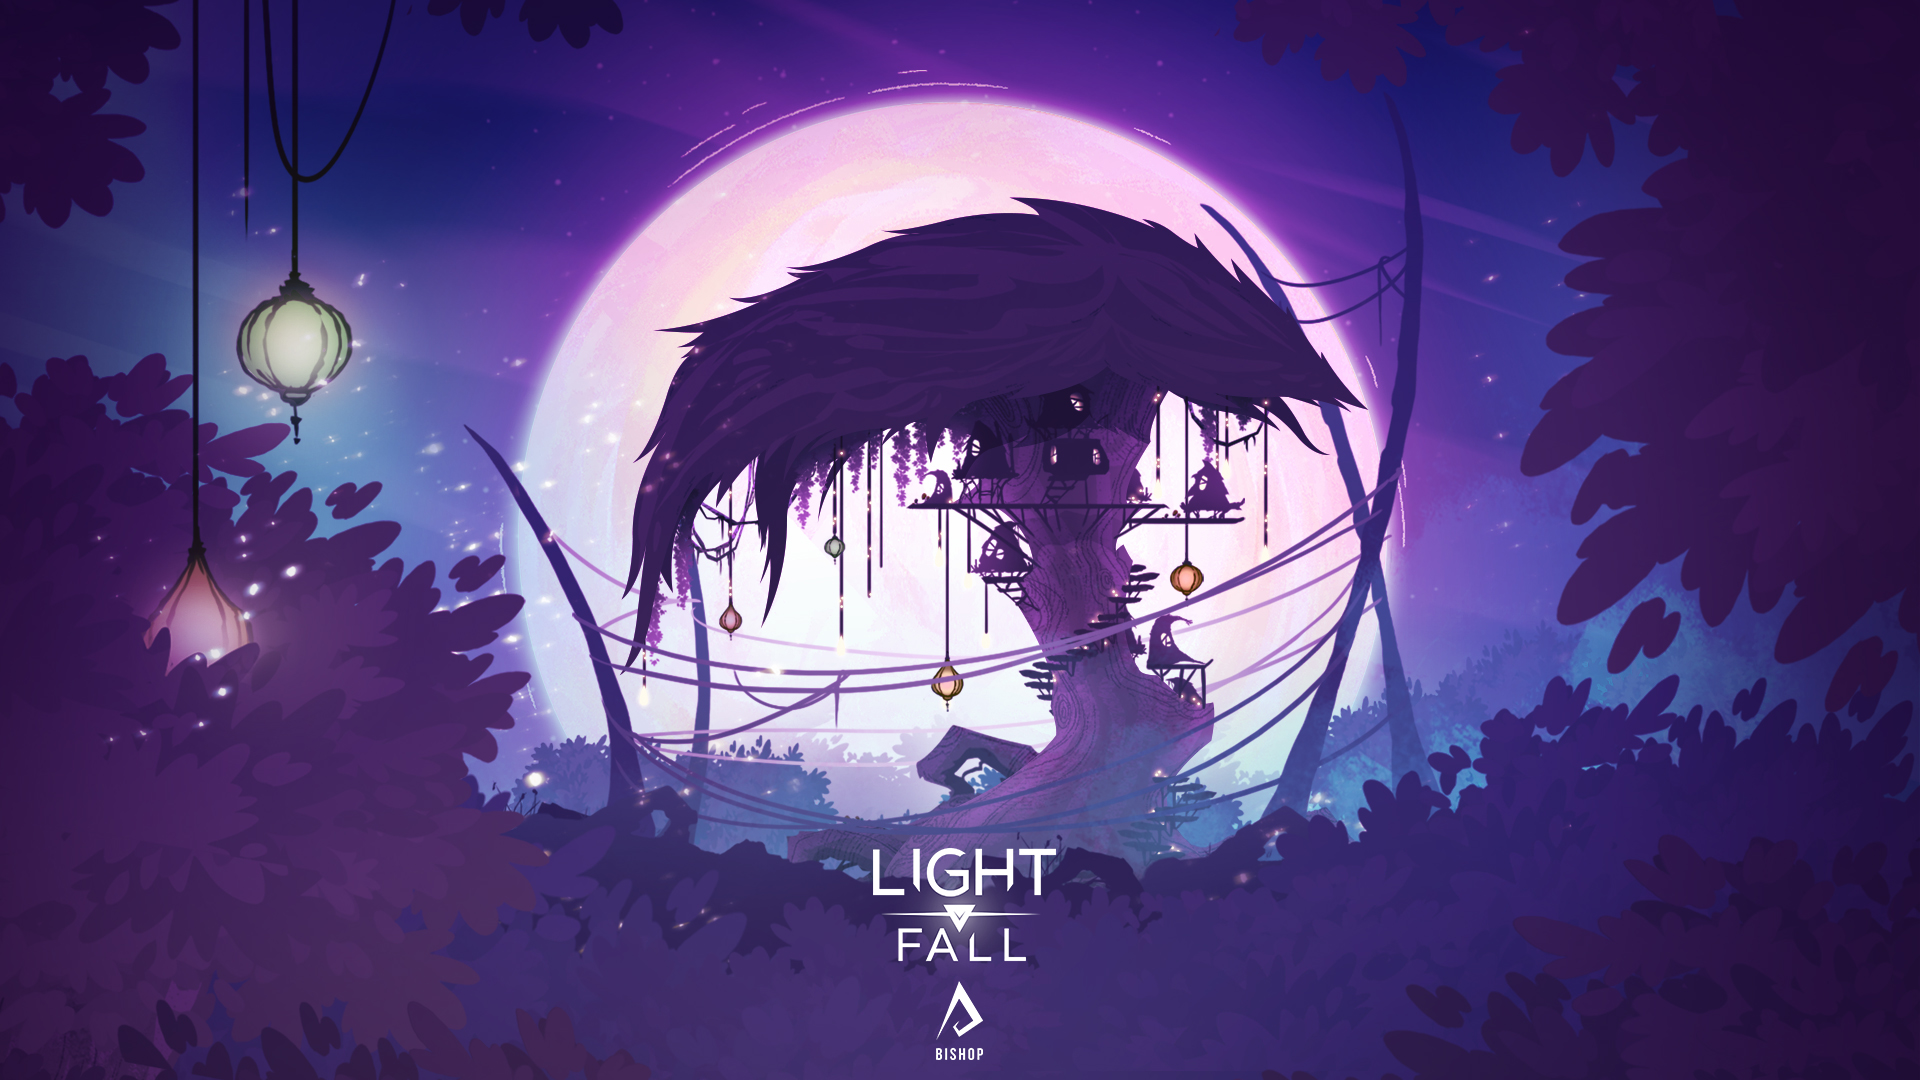 lightfall_04.jpg